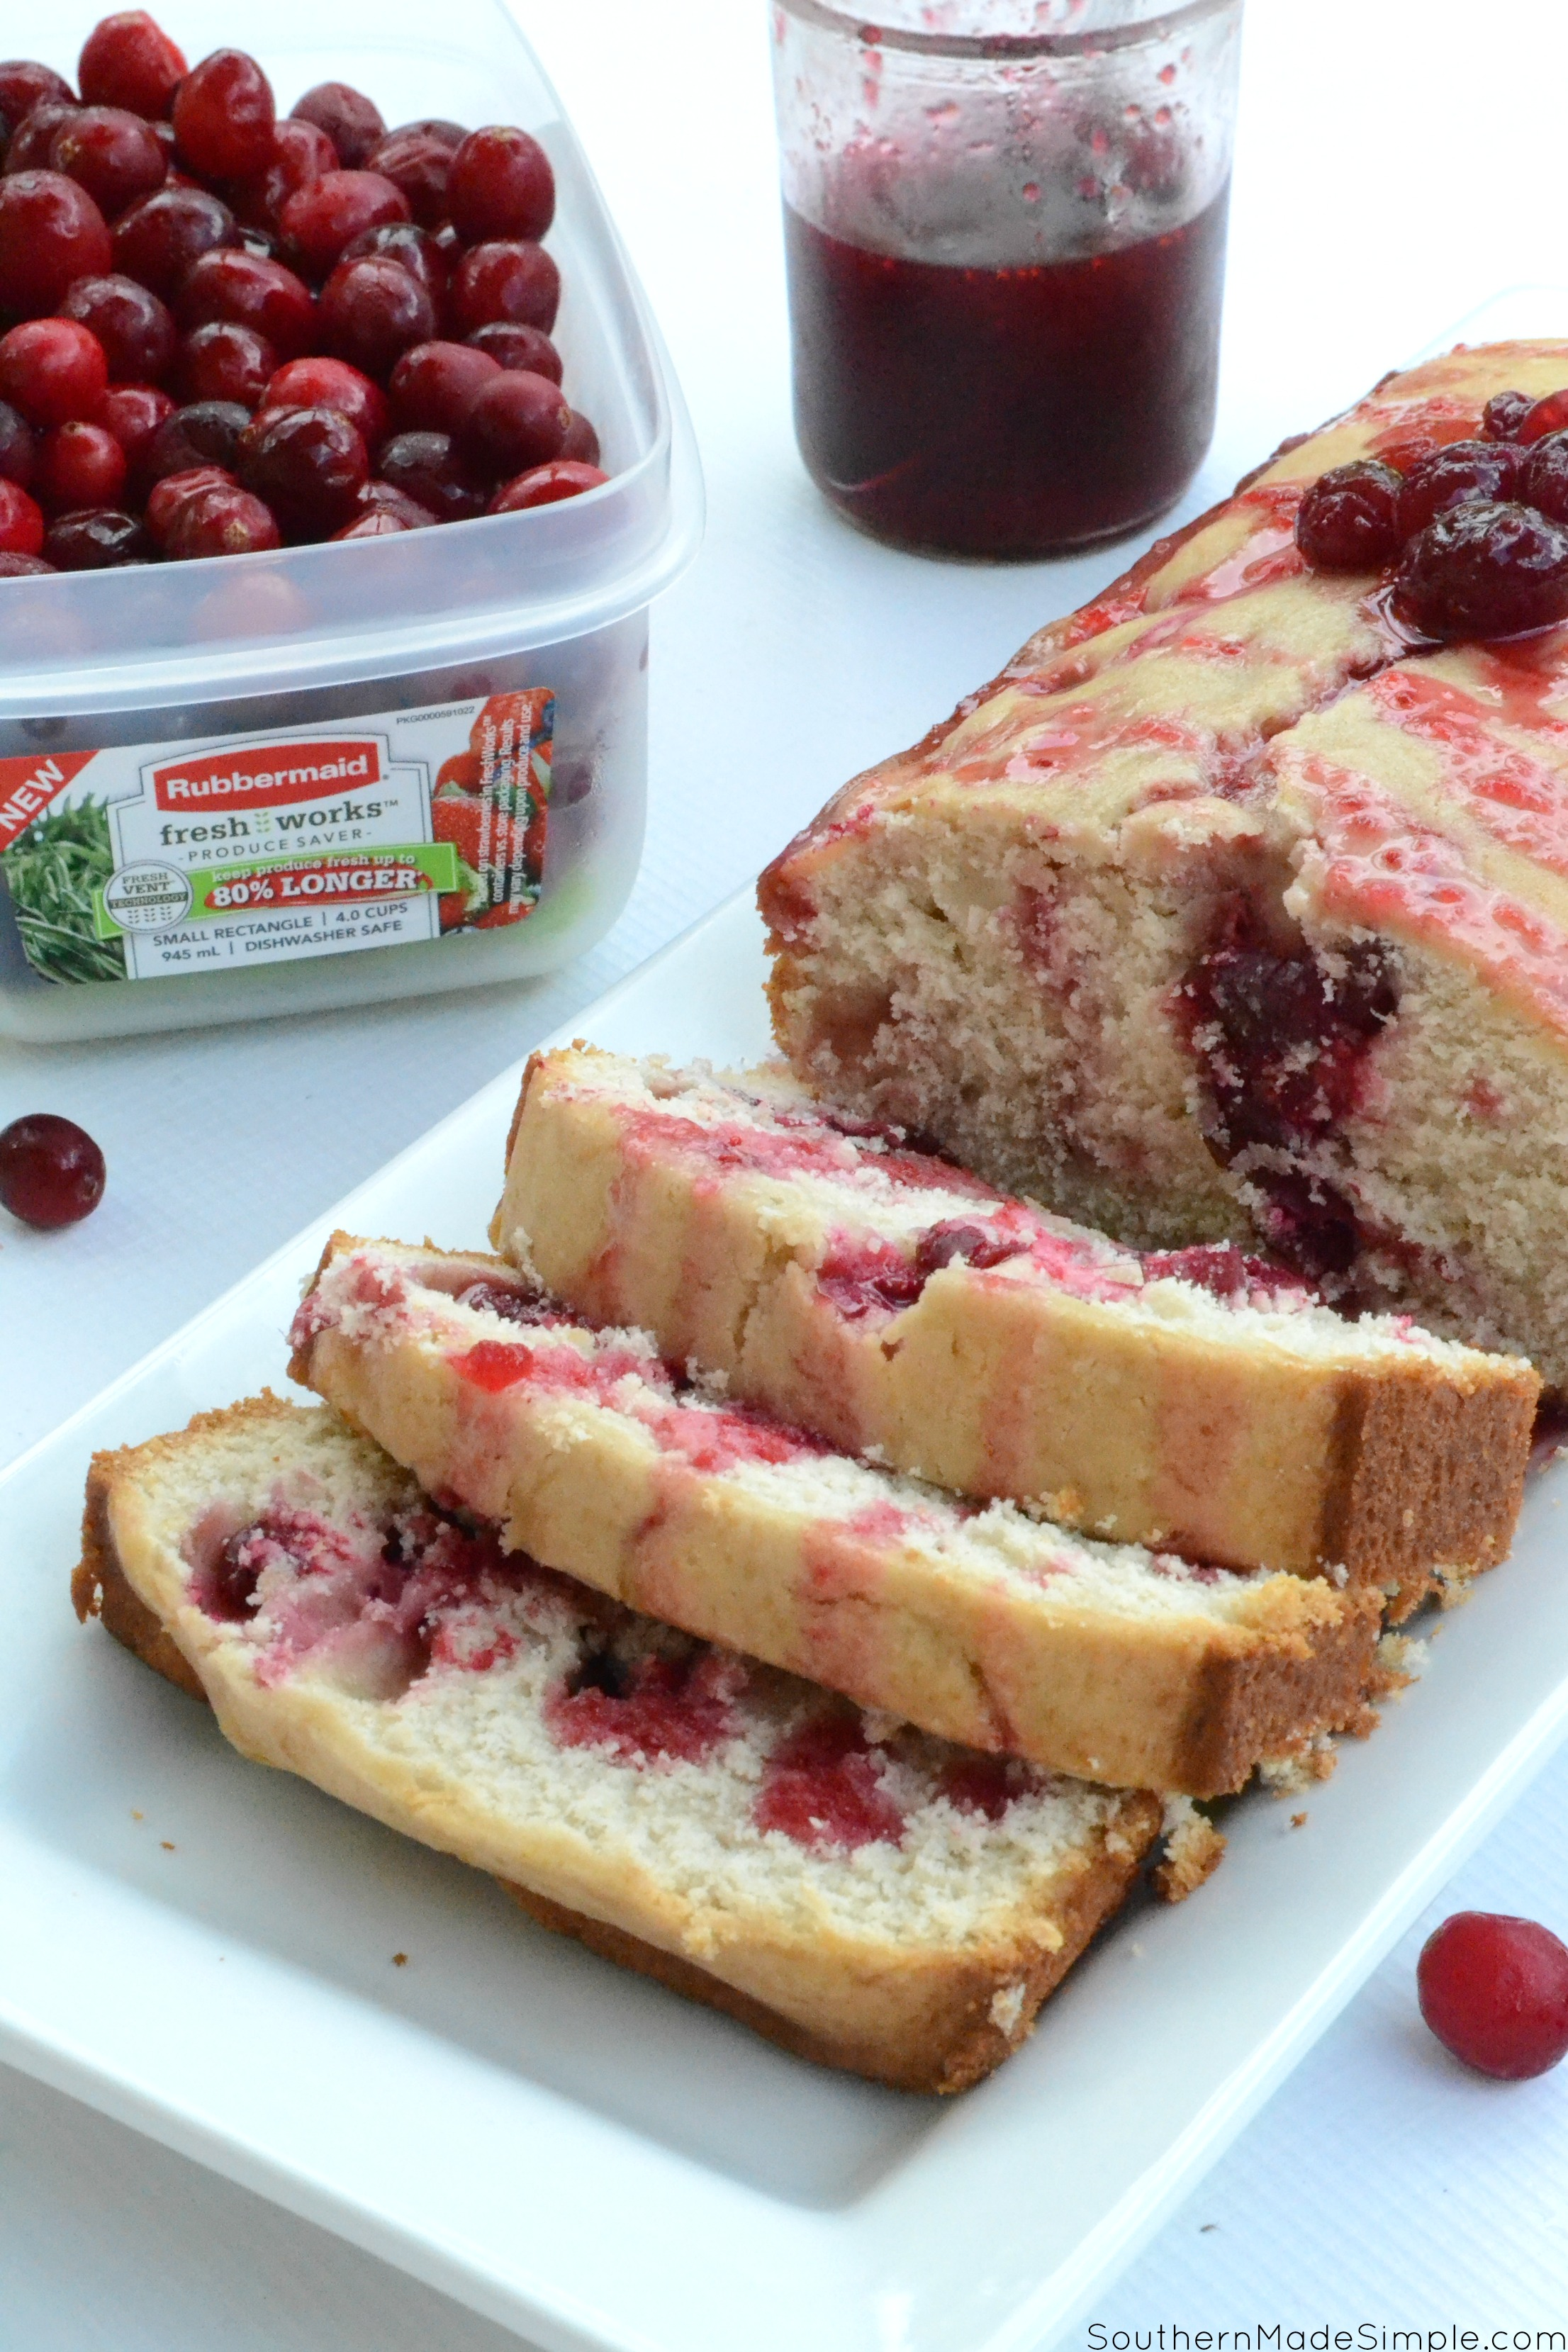 Each slice of this dreamy dense pound cake with sweet cranberries tucked inside will make you wish it was fall all year long! #FreshWorksFreshness #ad